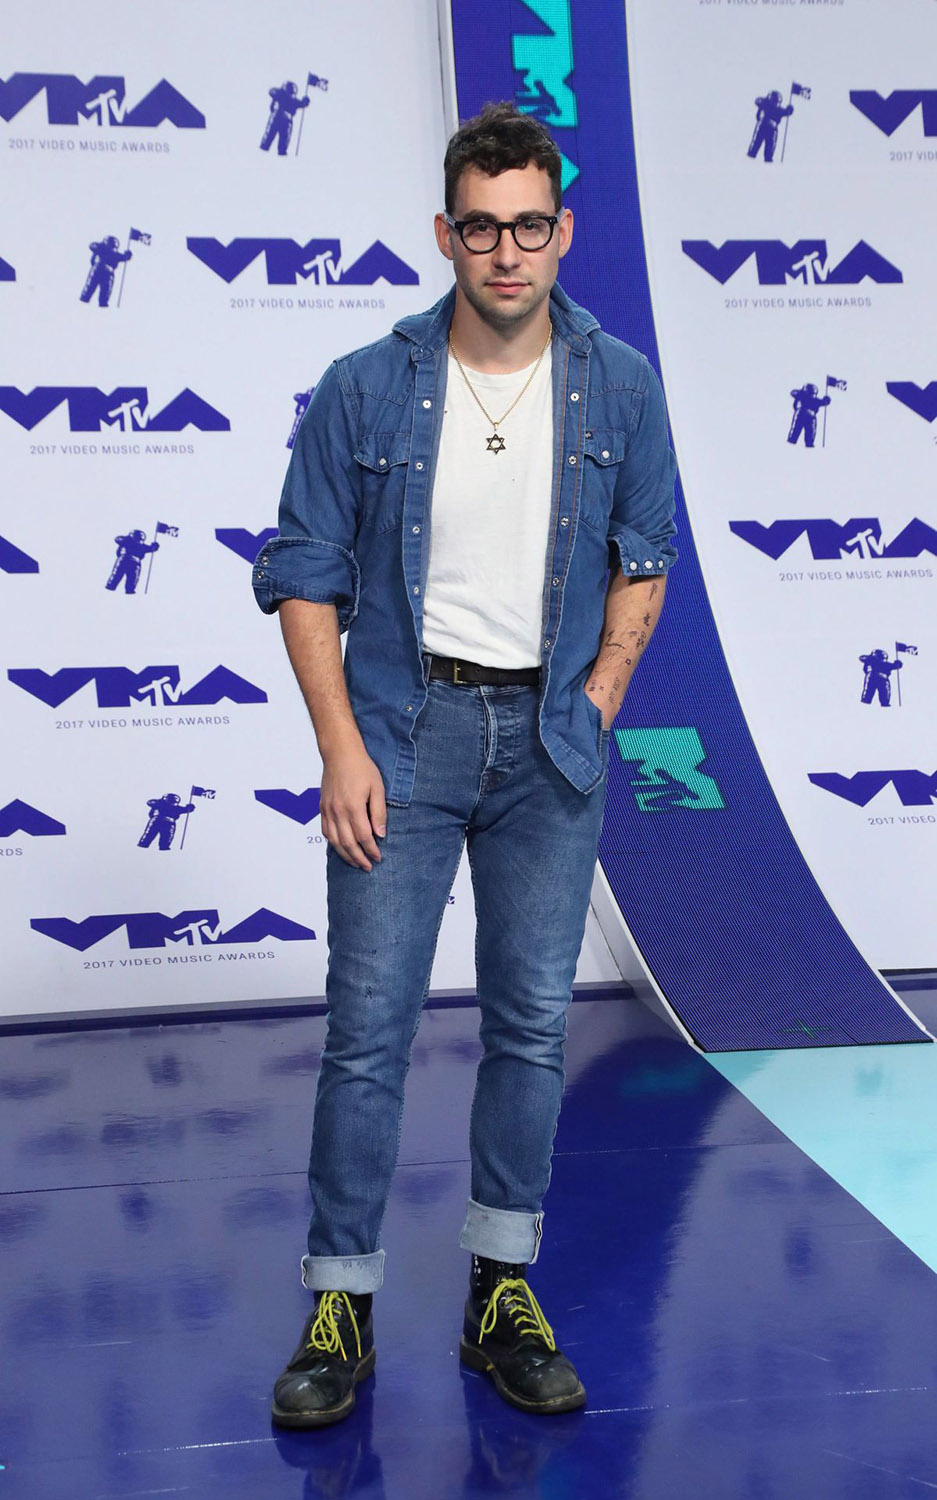 VMAs 2017 Best Dressed (& Worst Dressed) Men